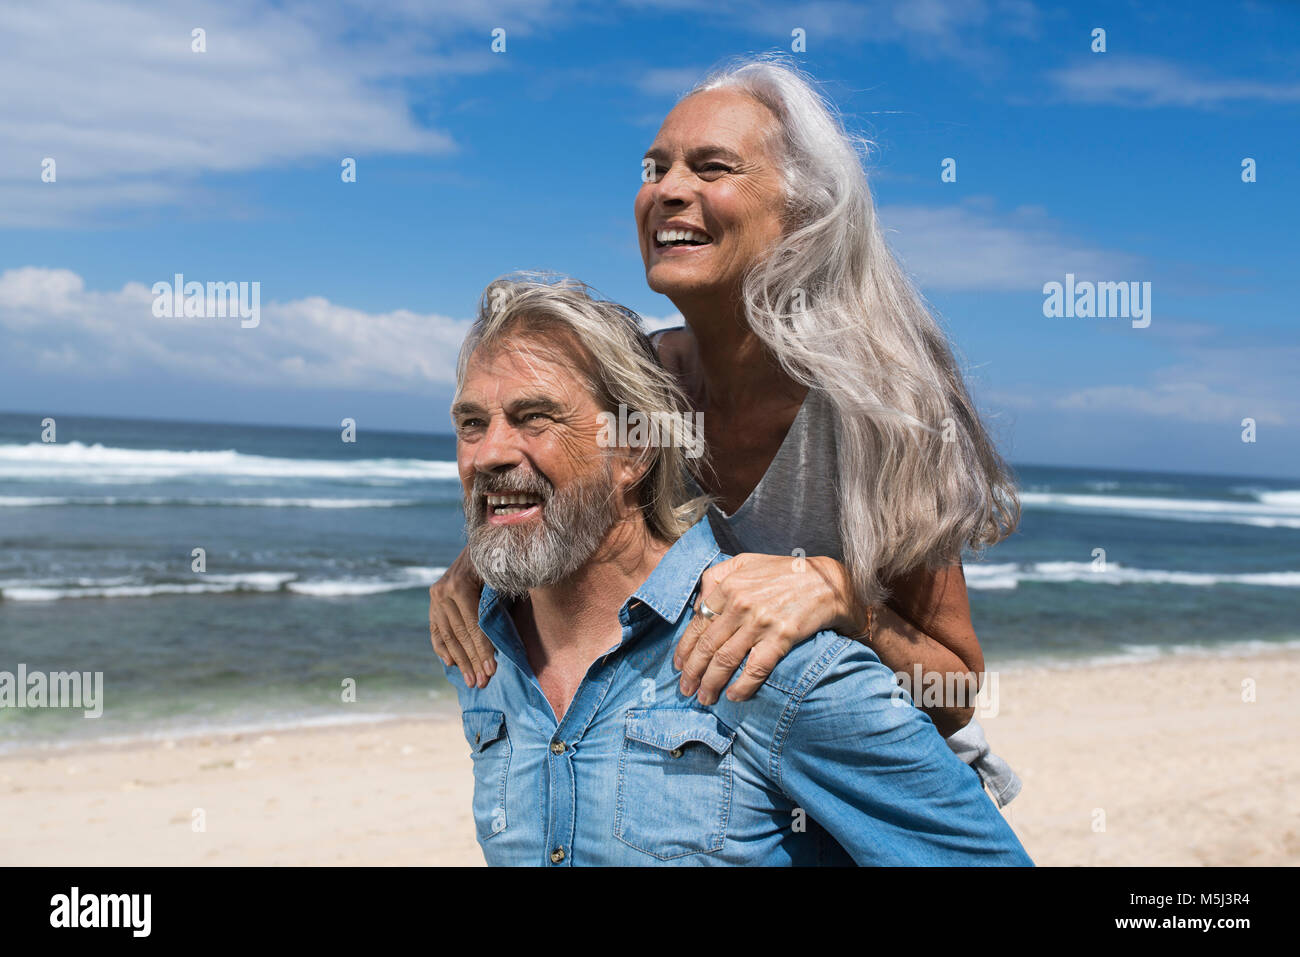 Handsome senior couple having fun at the beach Photo Stock